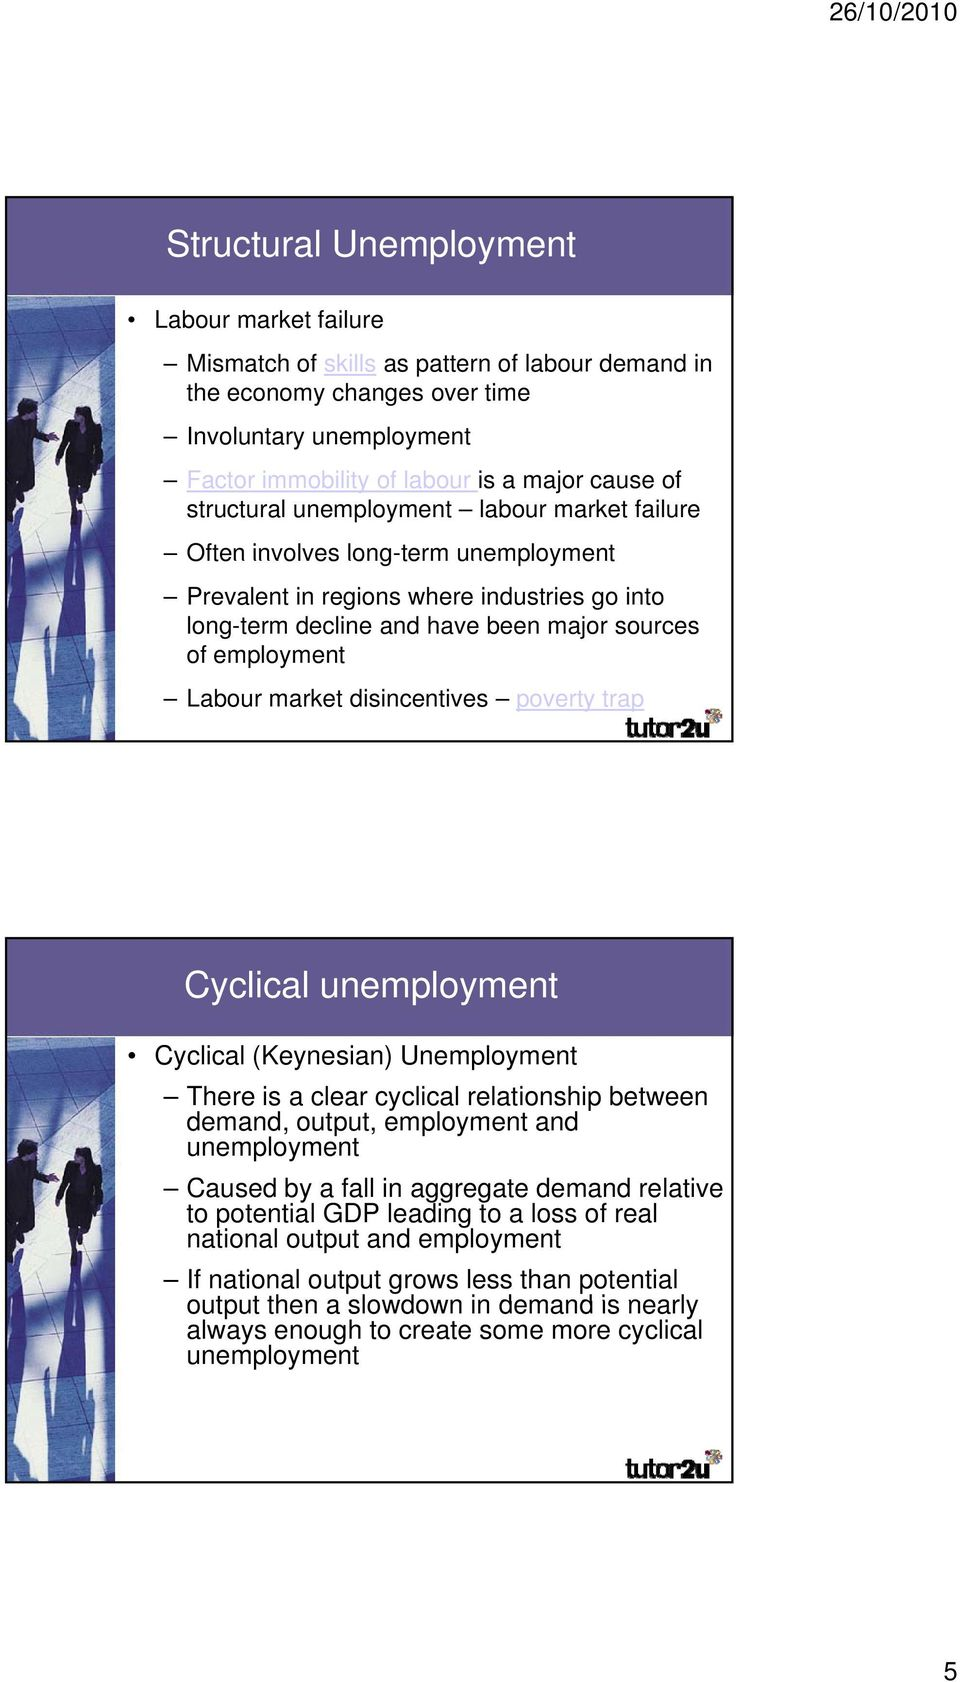 market disincentives poverty trap Cyclical unemployment Cyclical (Keynesian) Unemployment There is a clear cyclical relationship between demand, output, employment and unemployment Caused by a fall